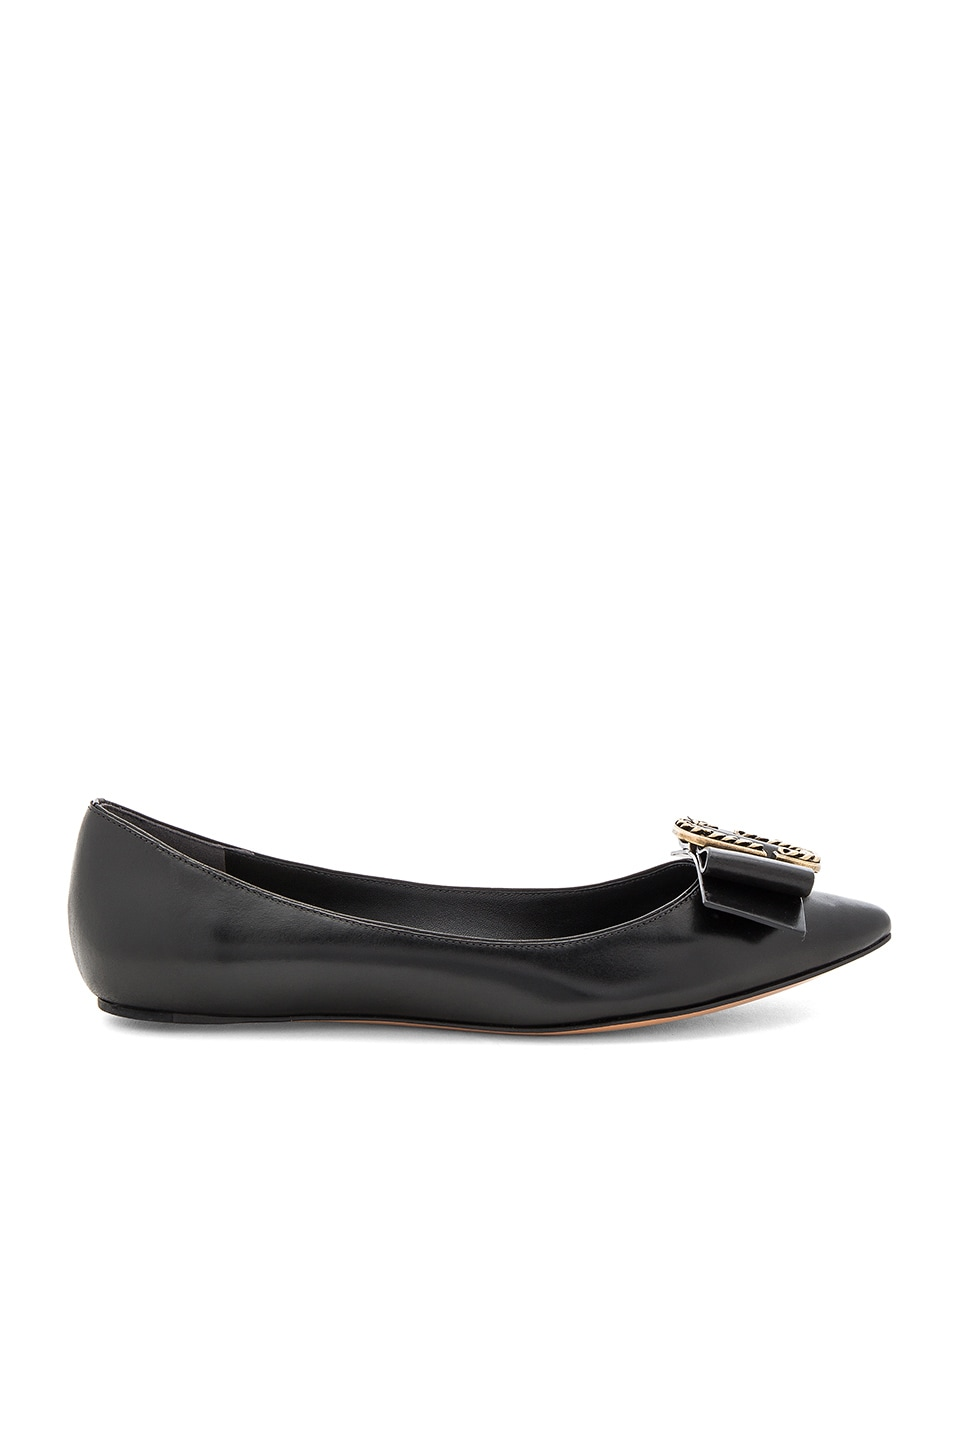 Marc Jacobs Interlock Pointy Toe Ballerina Flat in ブラック